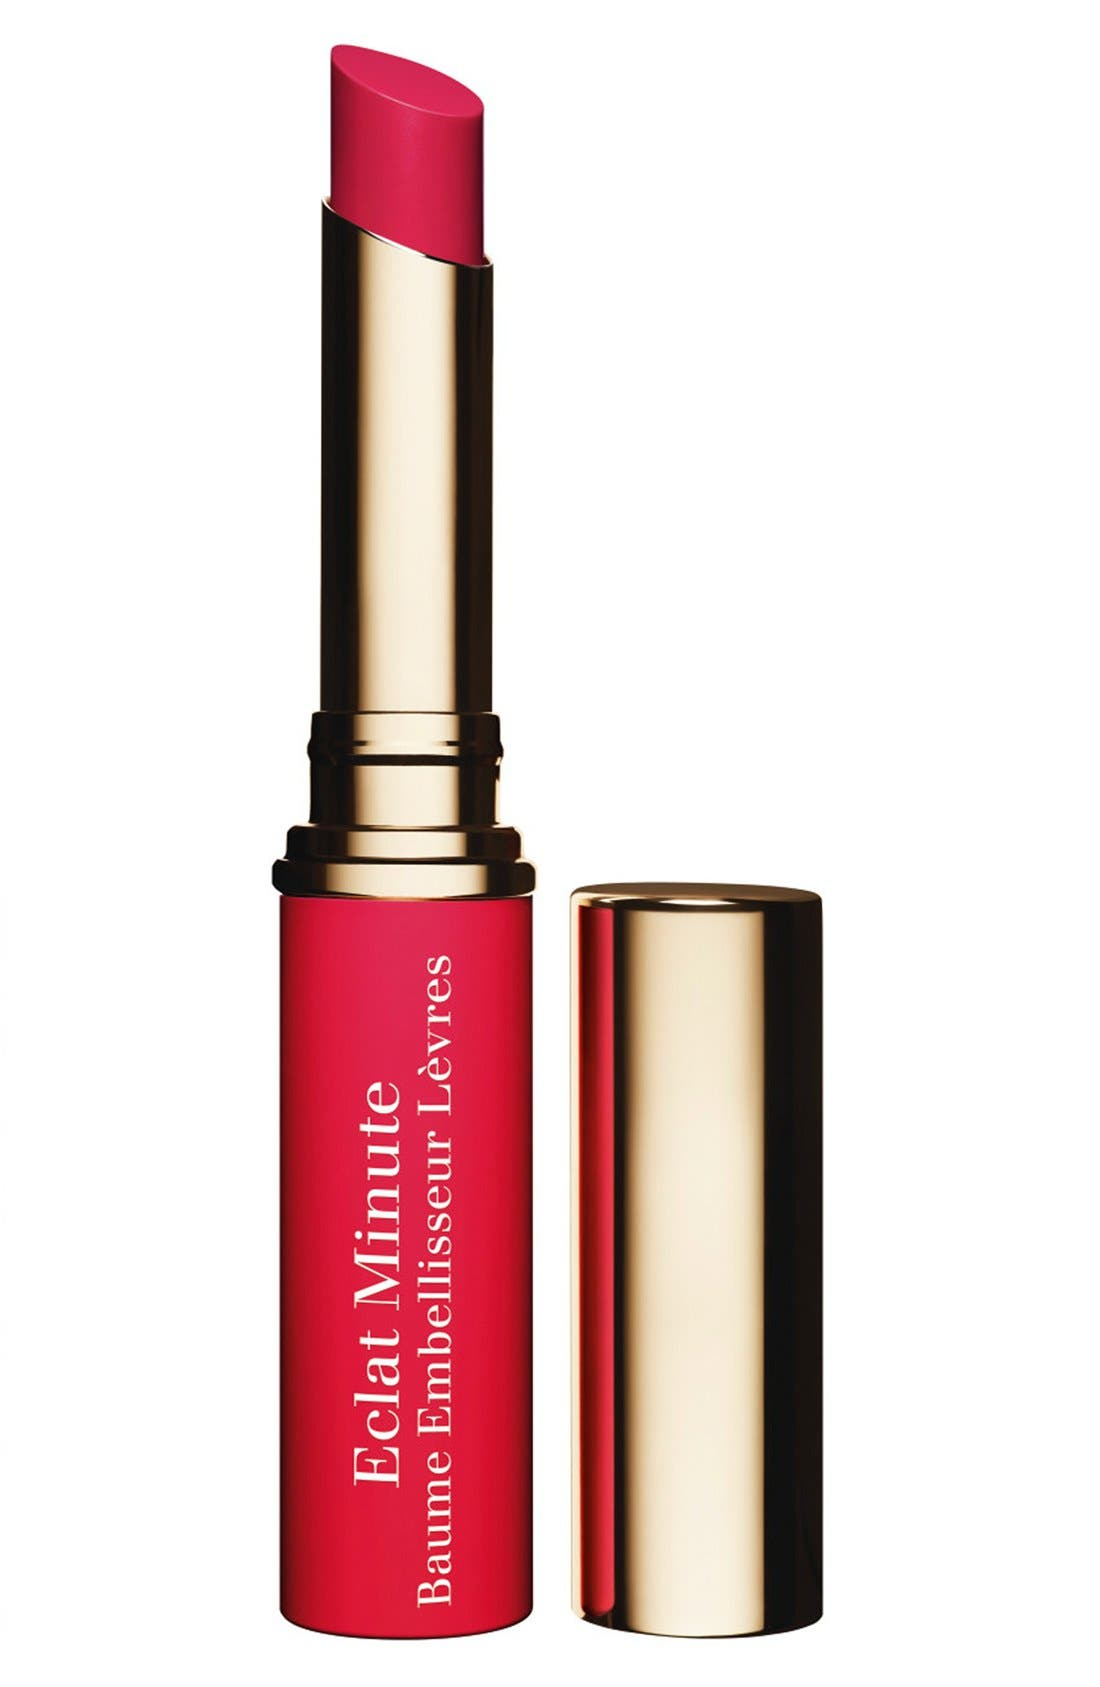 Clarins 'Instant Light' Lip Balm Perfector